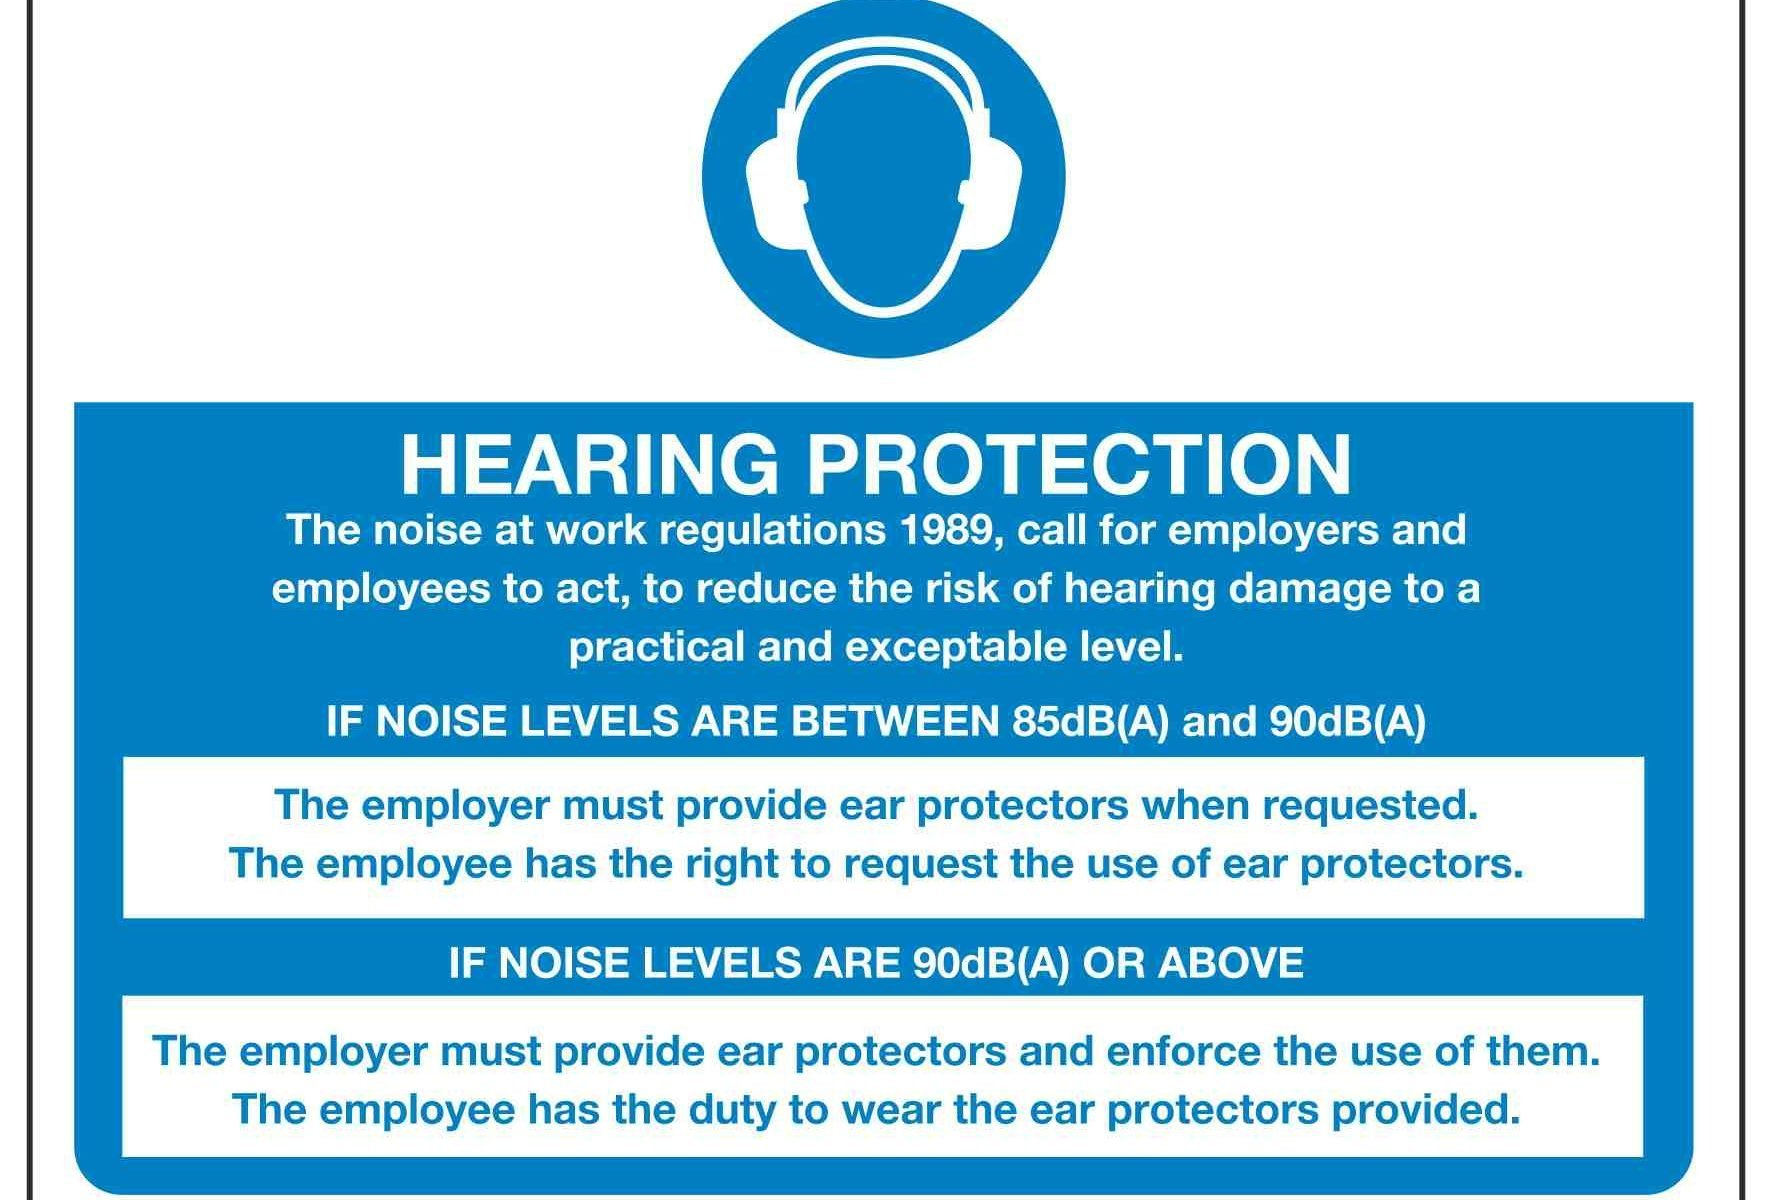 HEARING PROTECTION The noise at work regulations